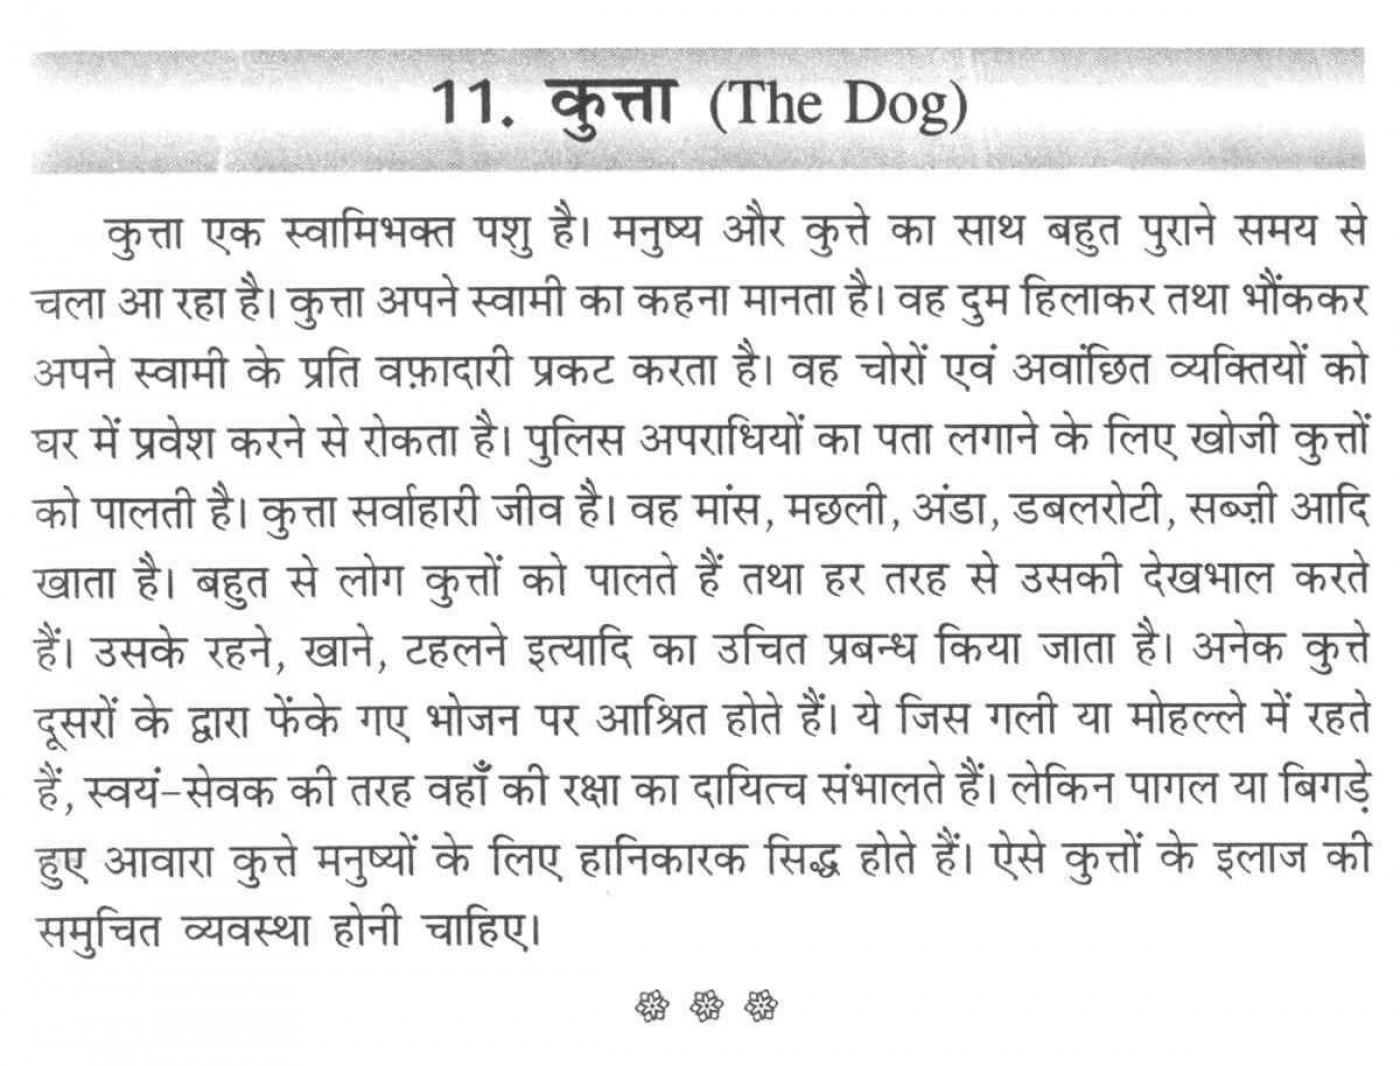 011 Aa110 Thumb Essay On Love For Animals In Hindi Fascinating Towards And Birds 1400